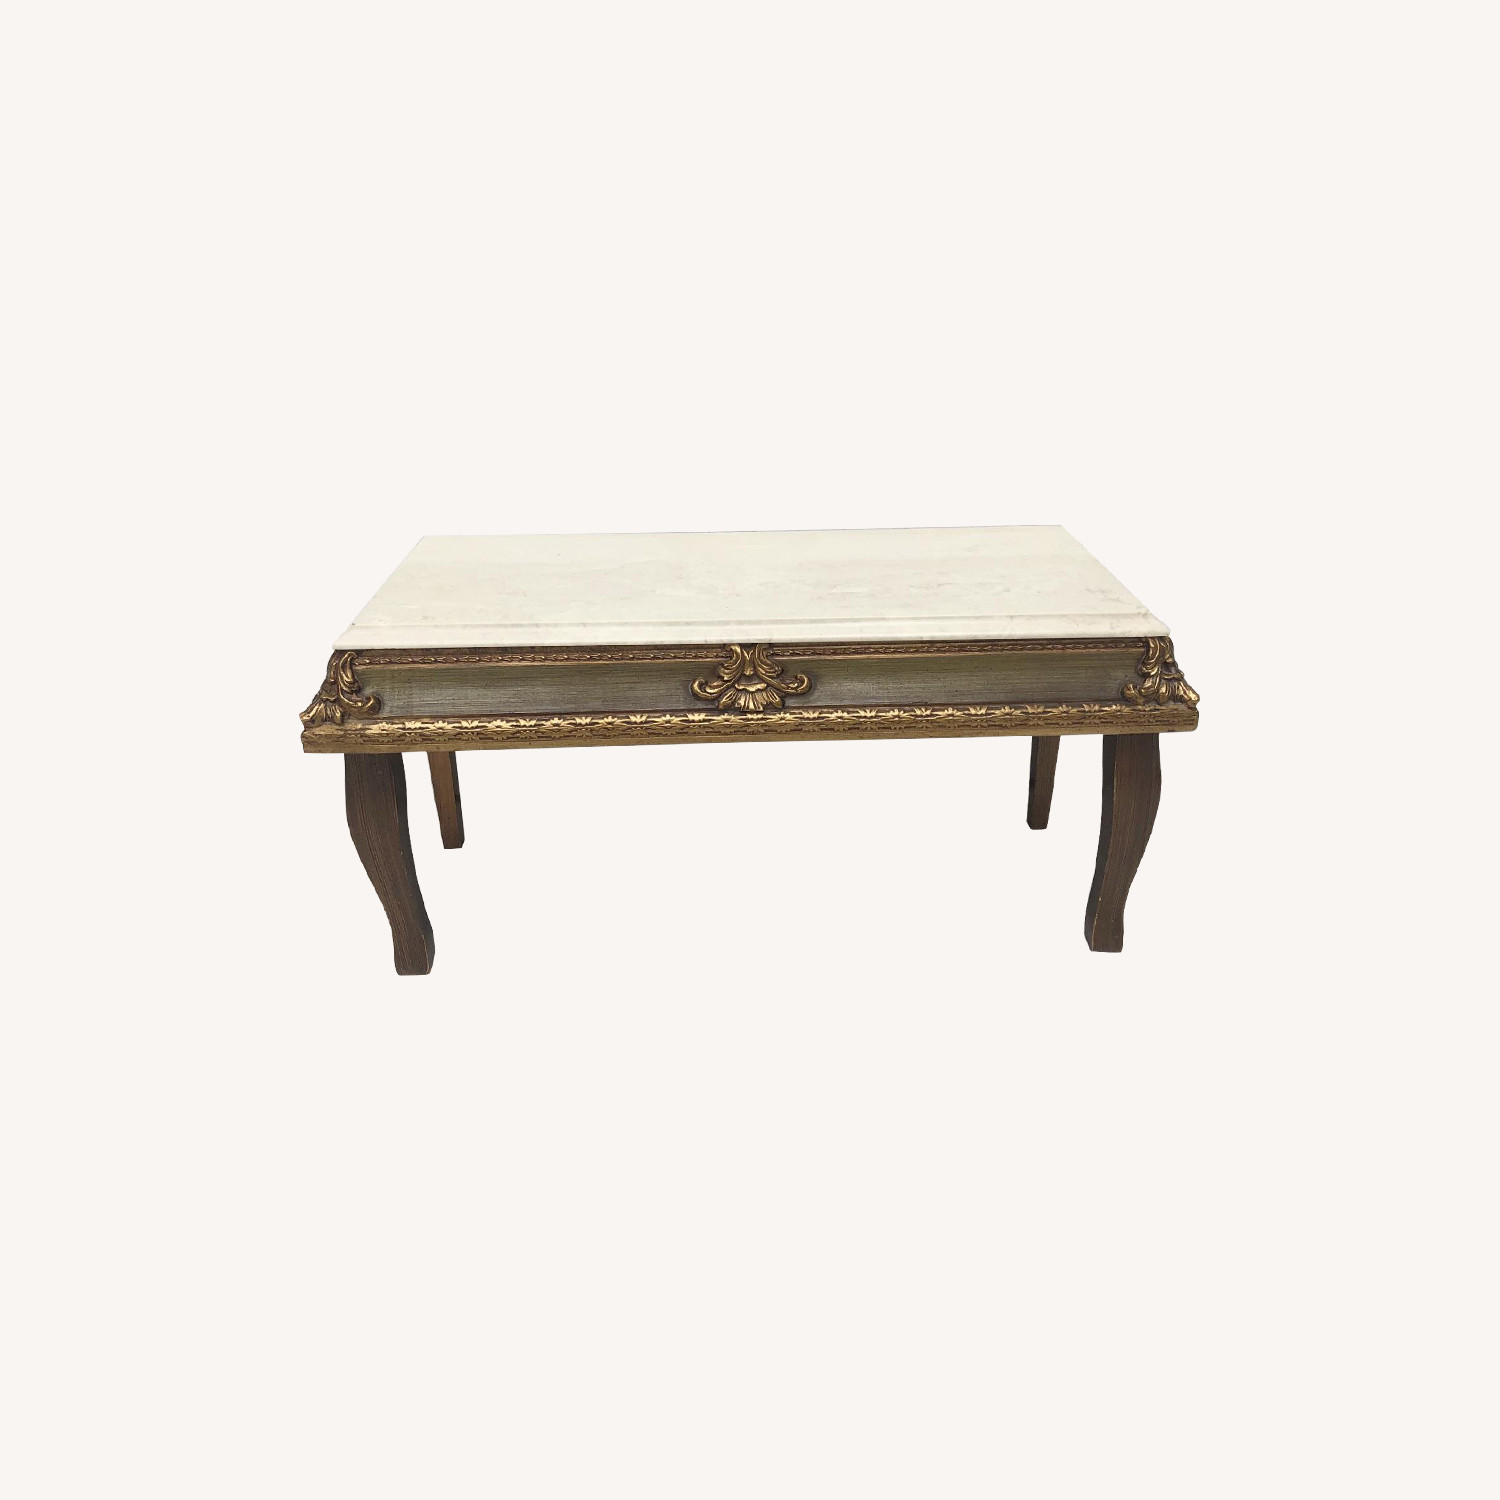 Vintage French Country Marble Top Table